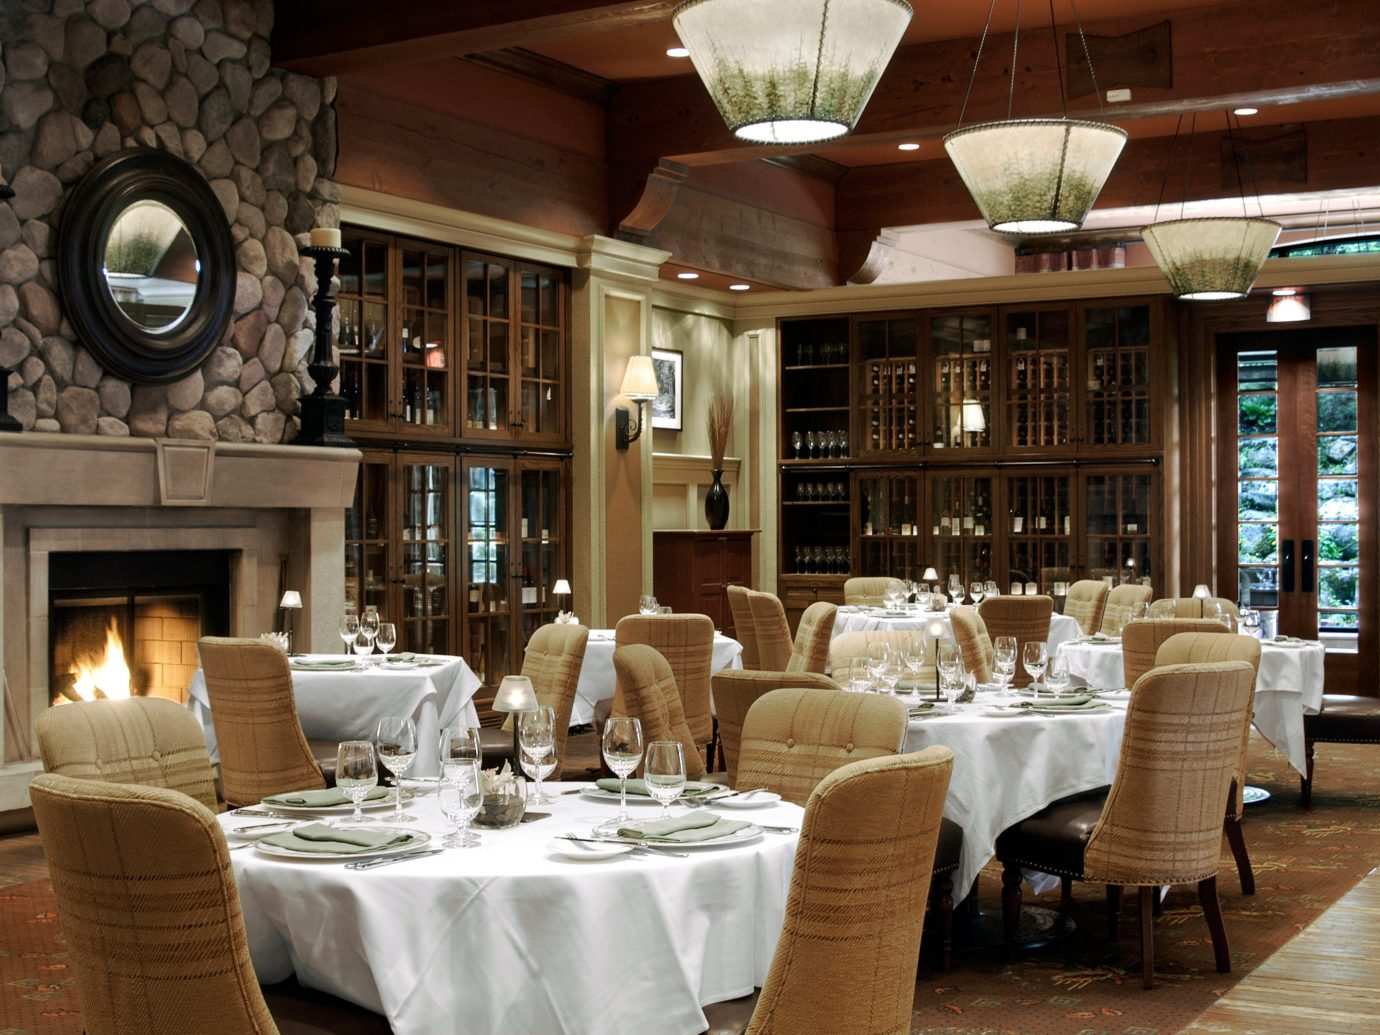 Adventure Dining Drink Eat Mountains + Skiing Rustic Trip Ideas indoor floor restaurant room ceiling meal estate function hall Resort interior design Fireplace furniture